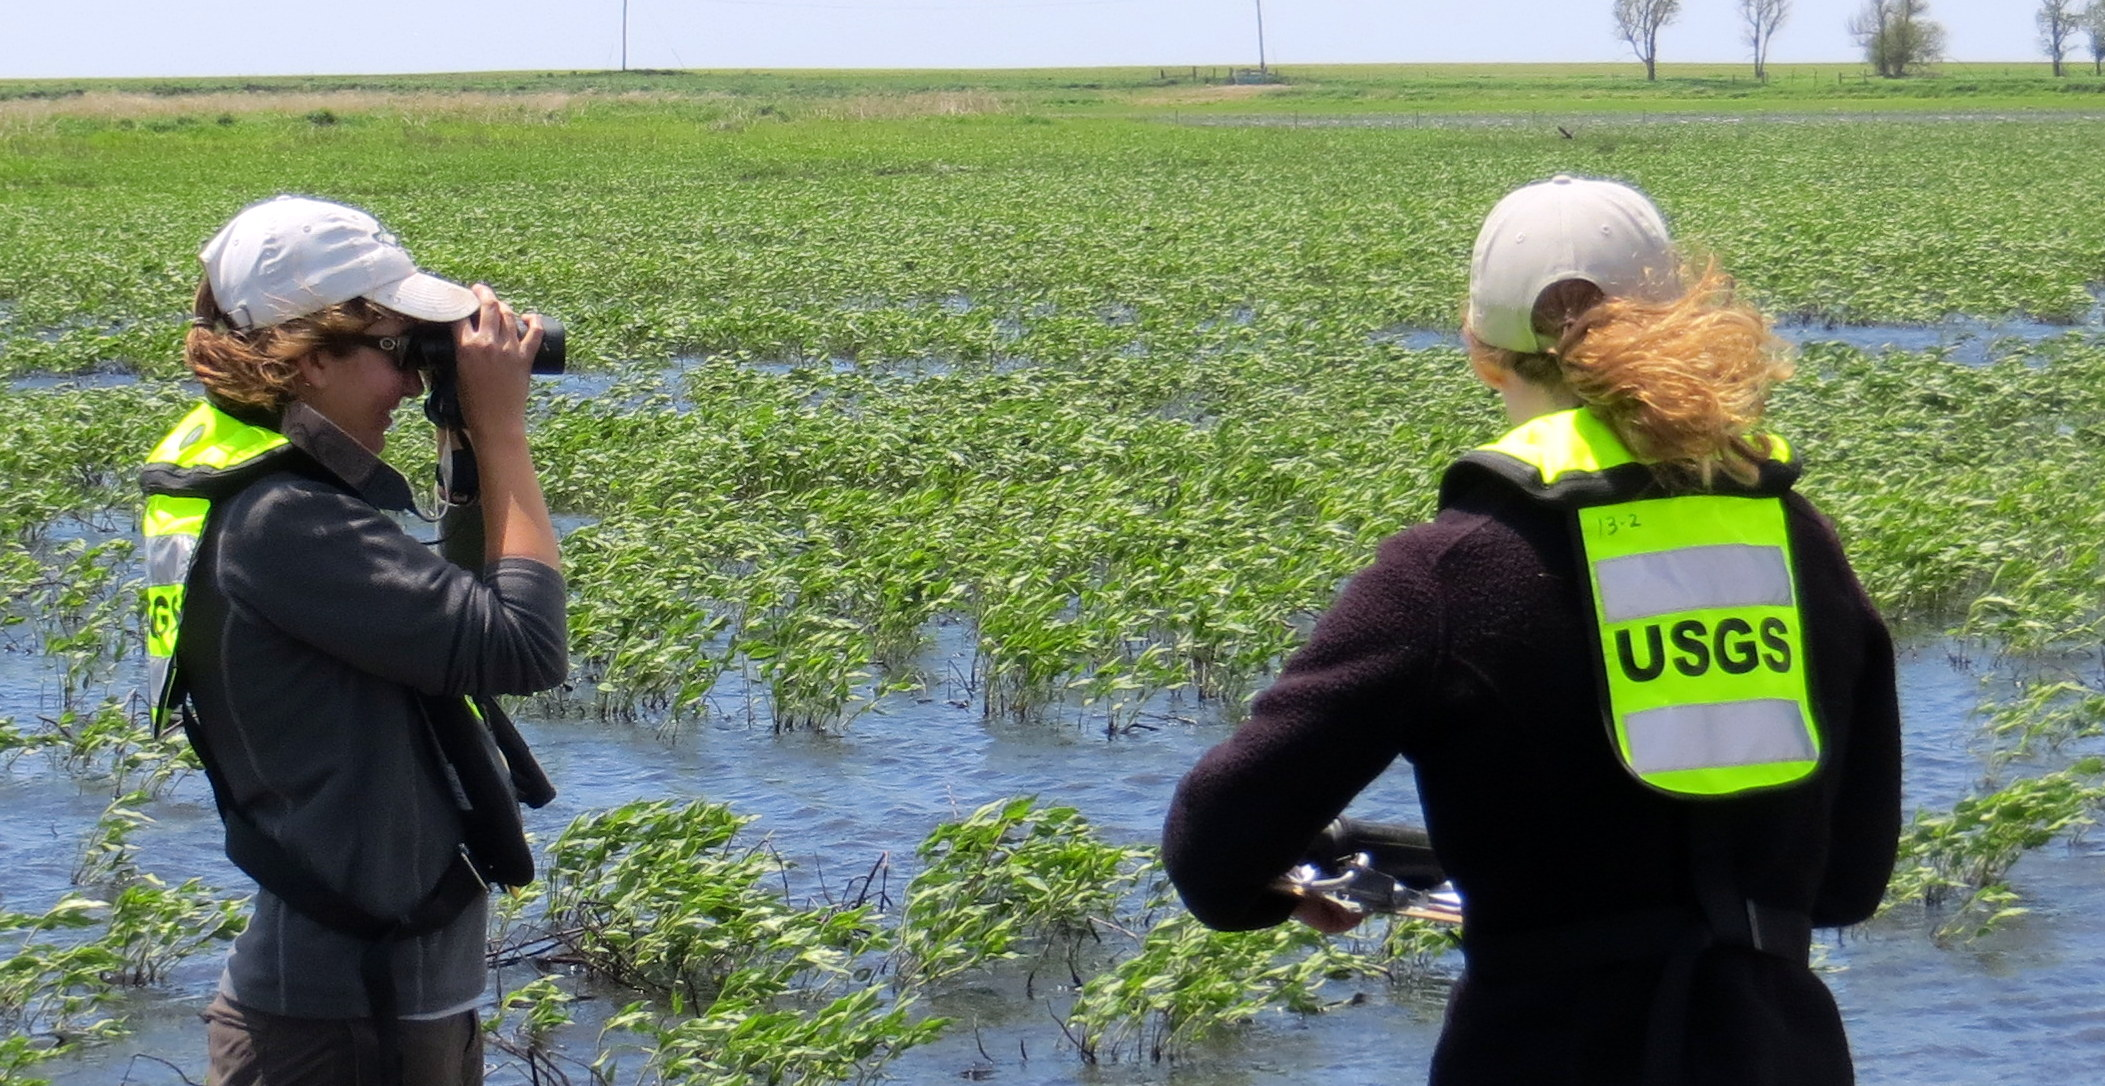 Caitlyn Gillespie and her crew survey for shorebirds in the Rainwater Basin, Nebraska.